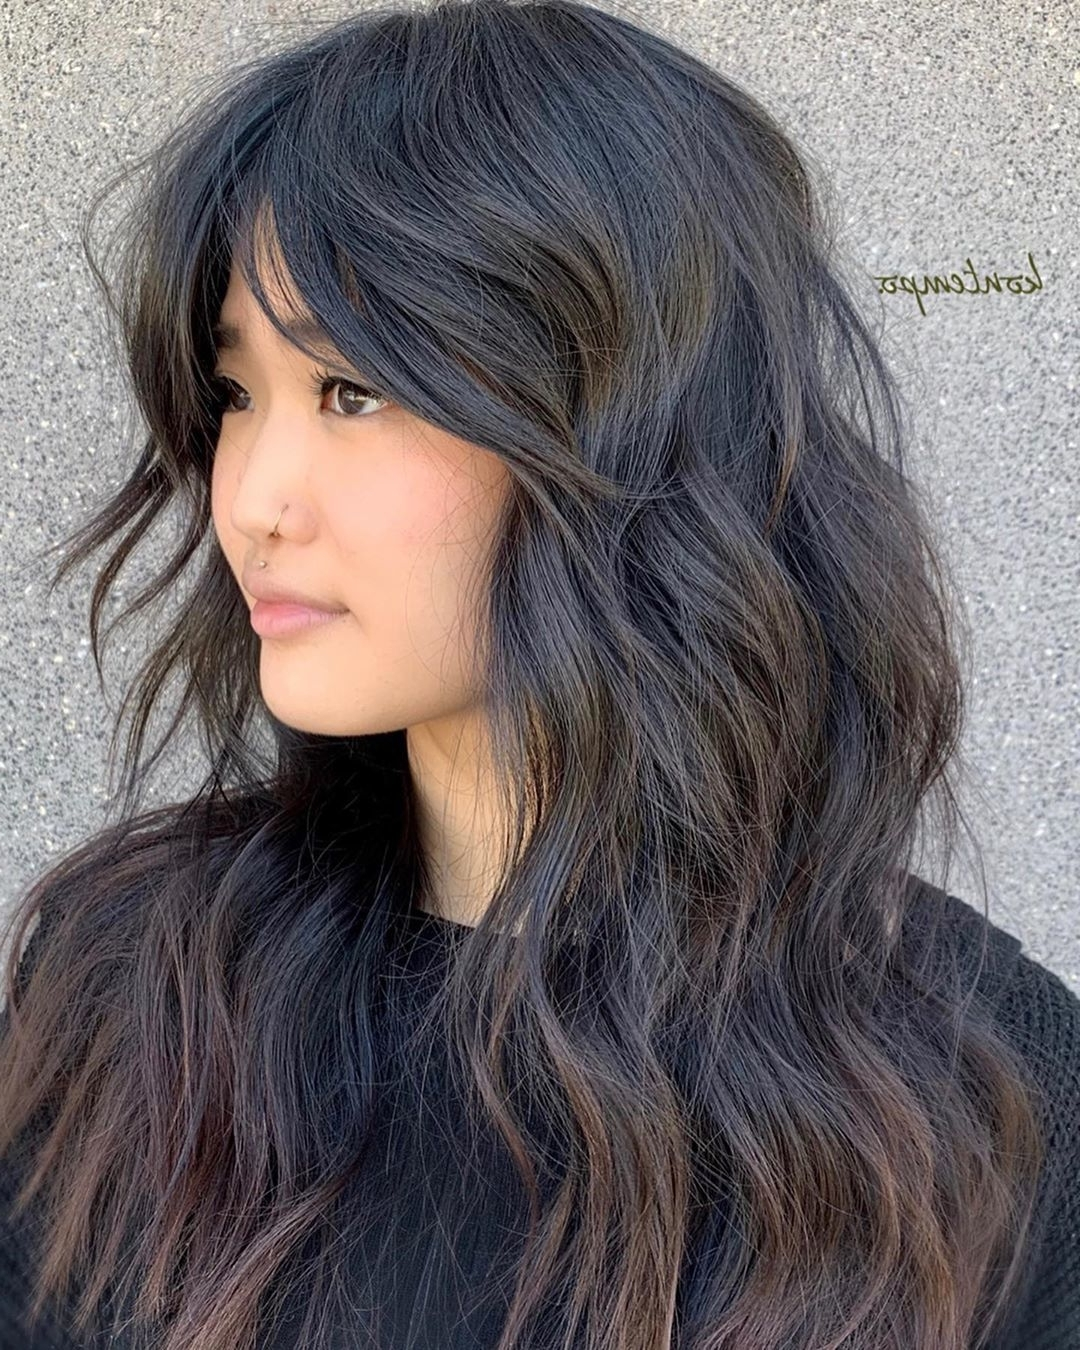 35 Trending Asian Hairstyles For Women (2020 Guide) 40+ Adorable Asian Women'S Hairstyles Medium Length